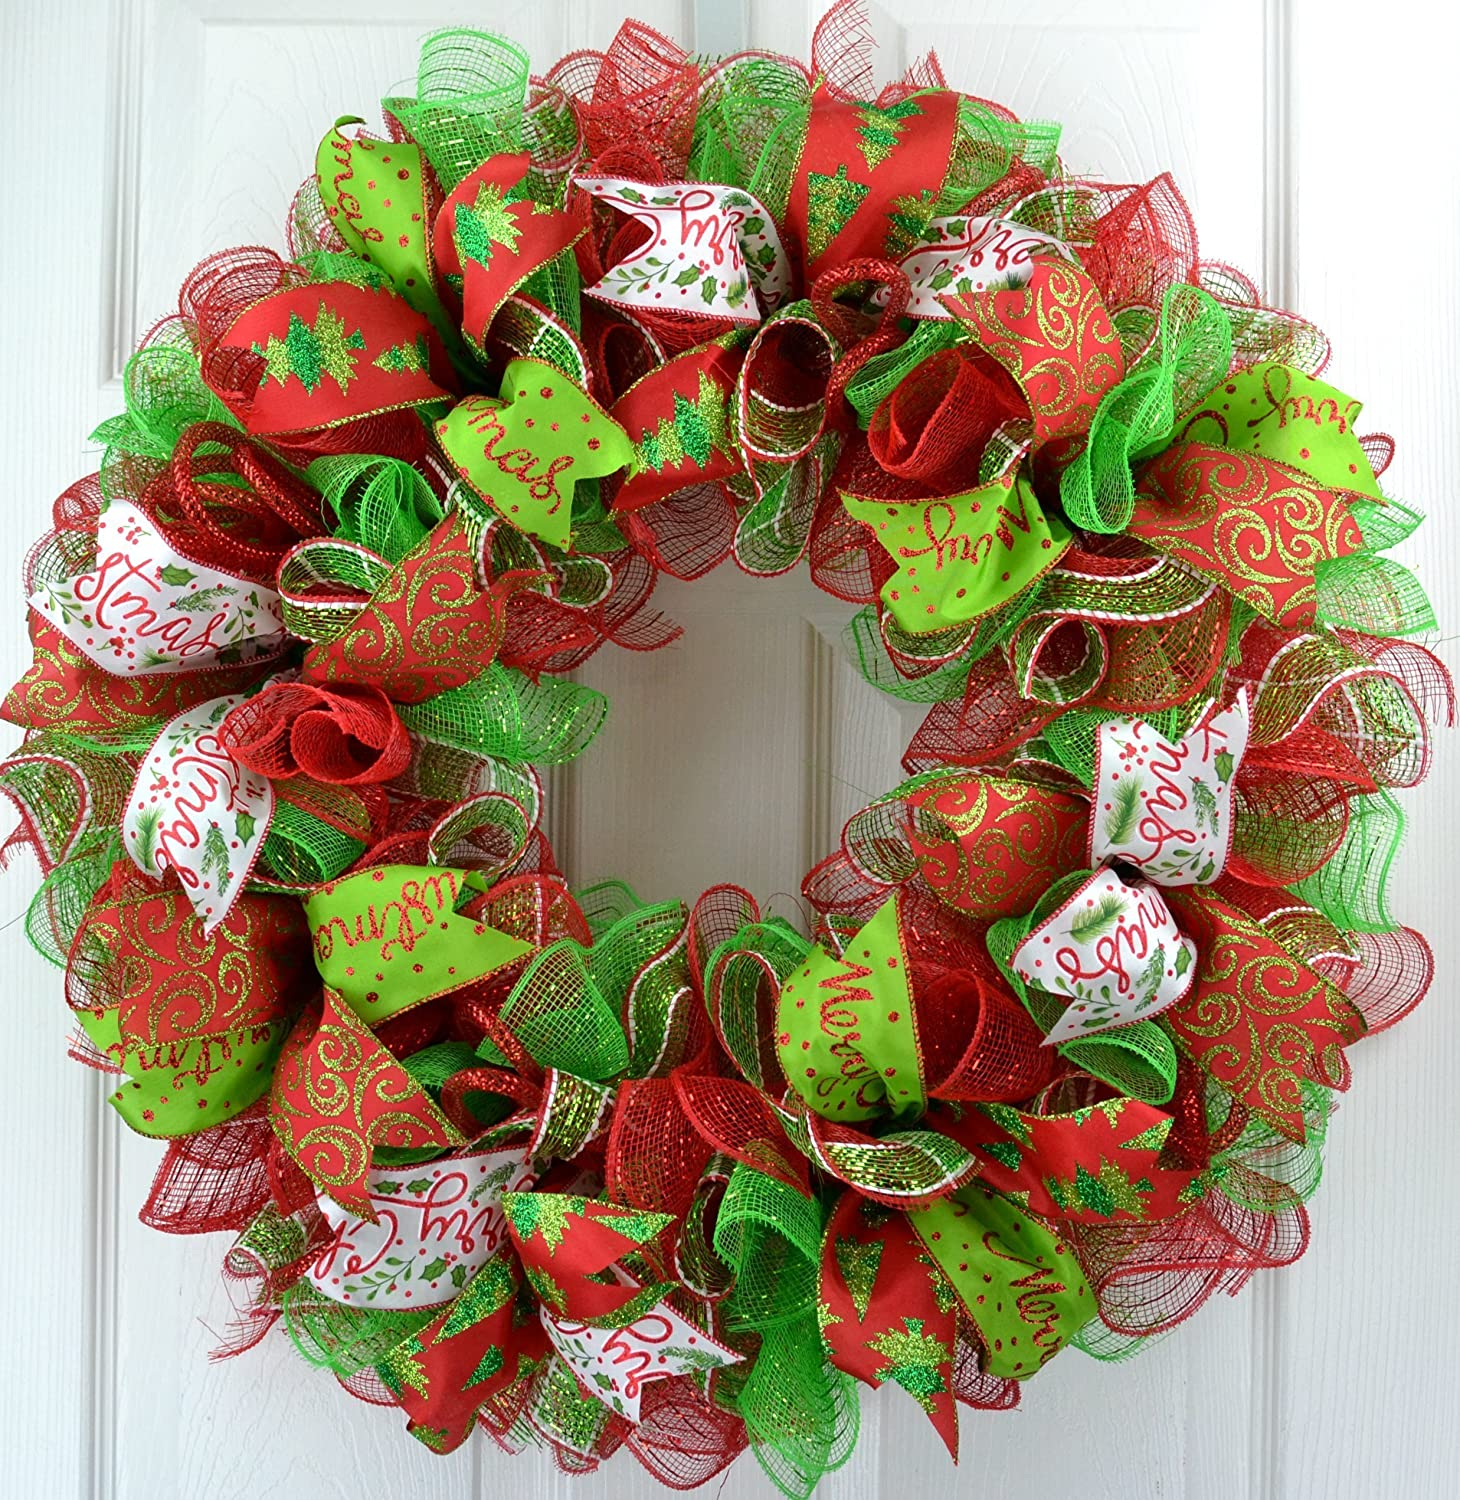 Red And White Christmas Wreath.Christmas Wreath Christmas Decoration Mesh Outdoor Front Door Wreath Red Lime Green White C1